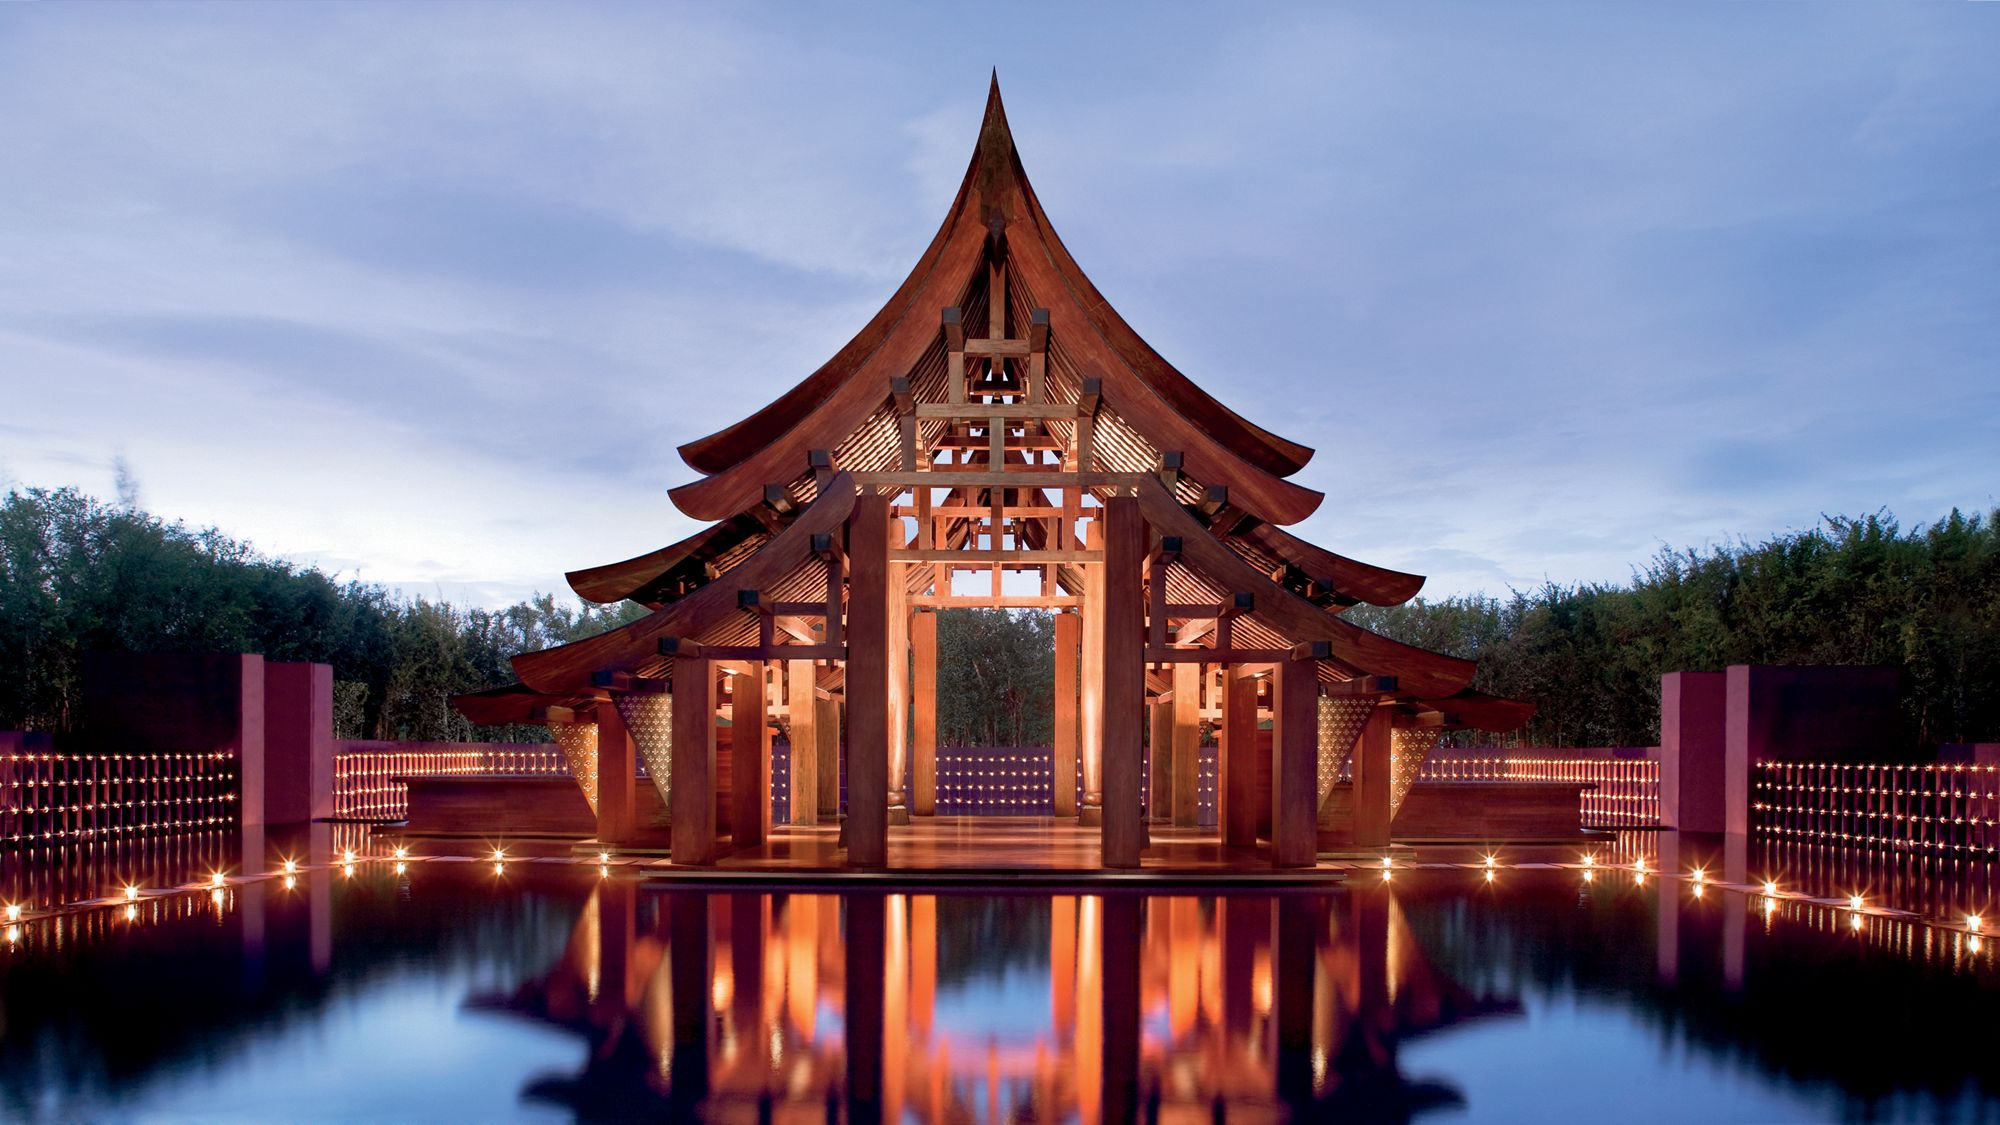 pagoda-style welcome pavilion next to a reflecting pool